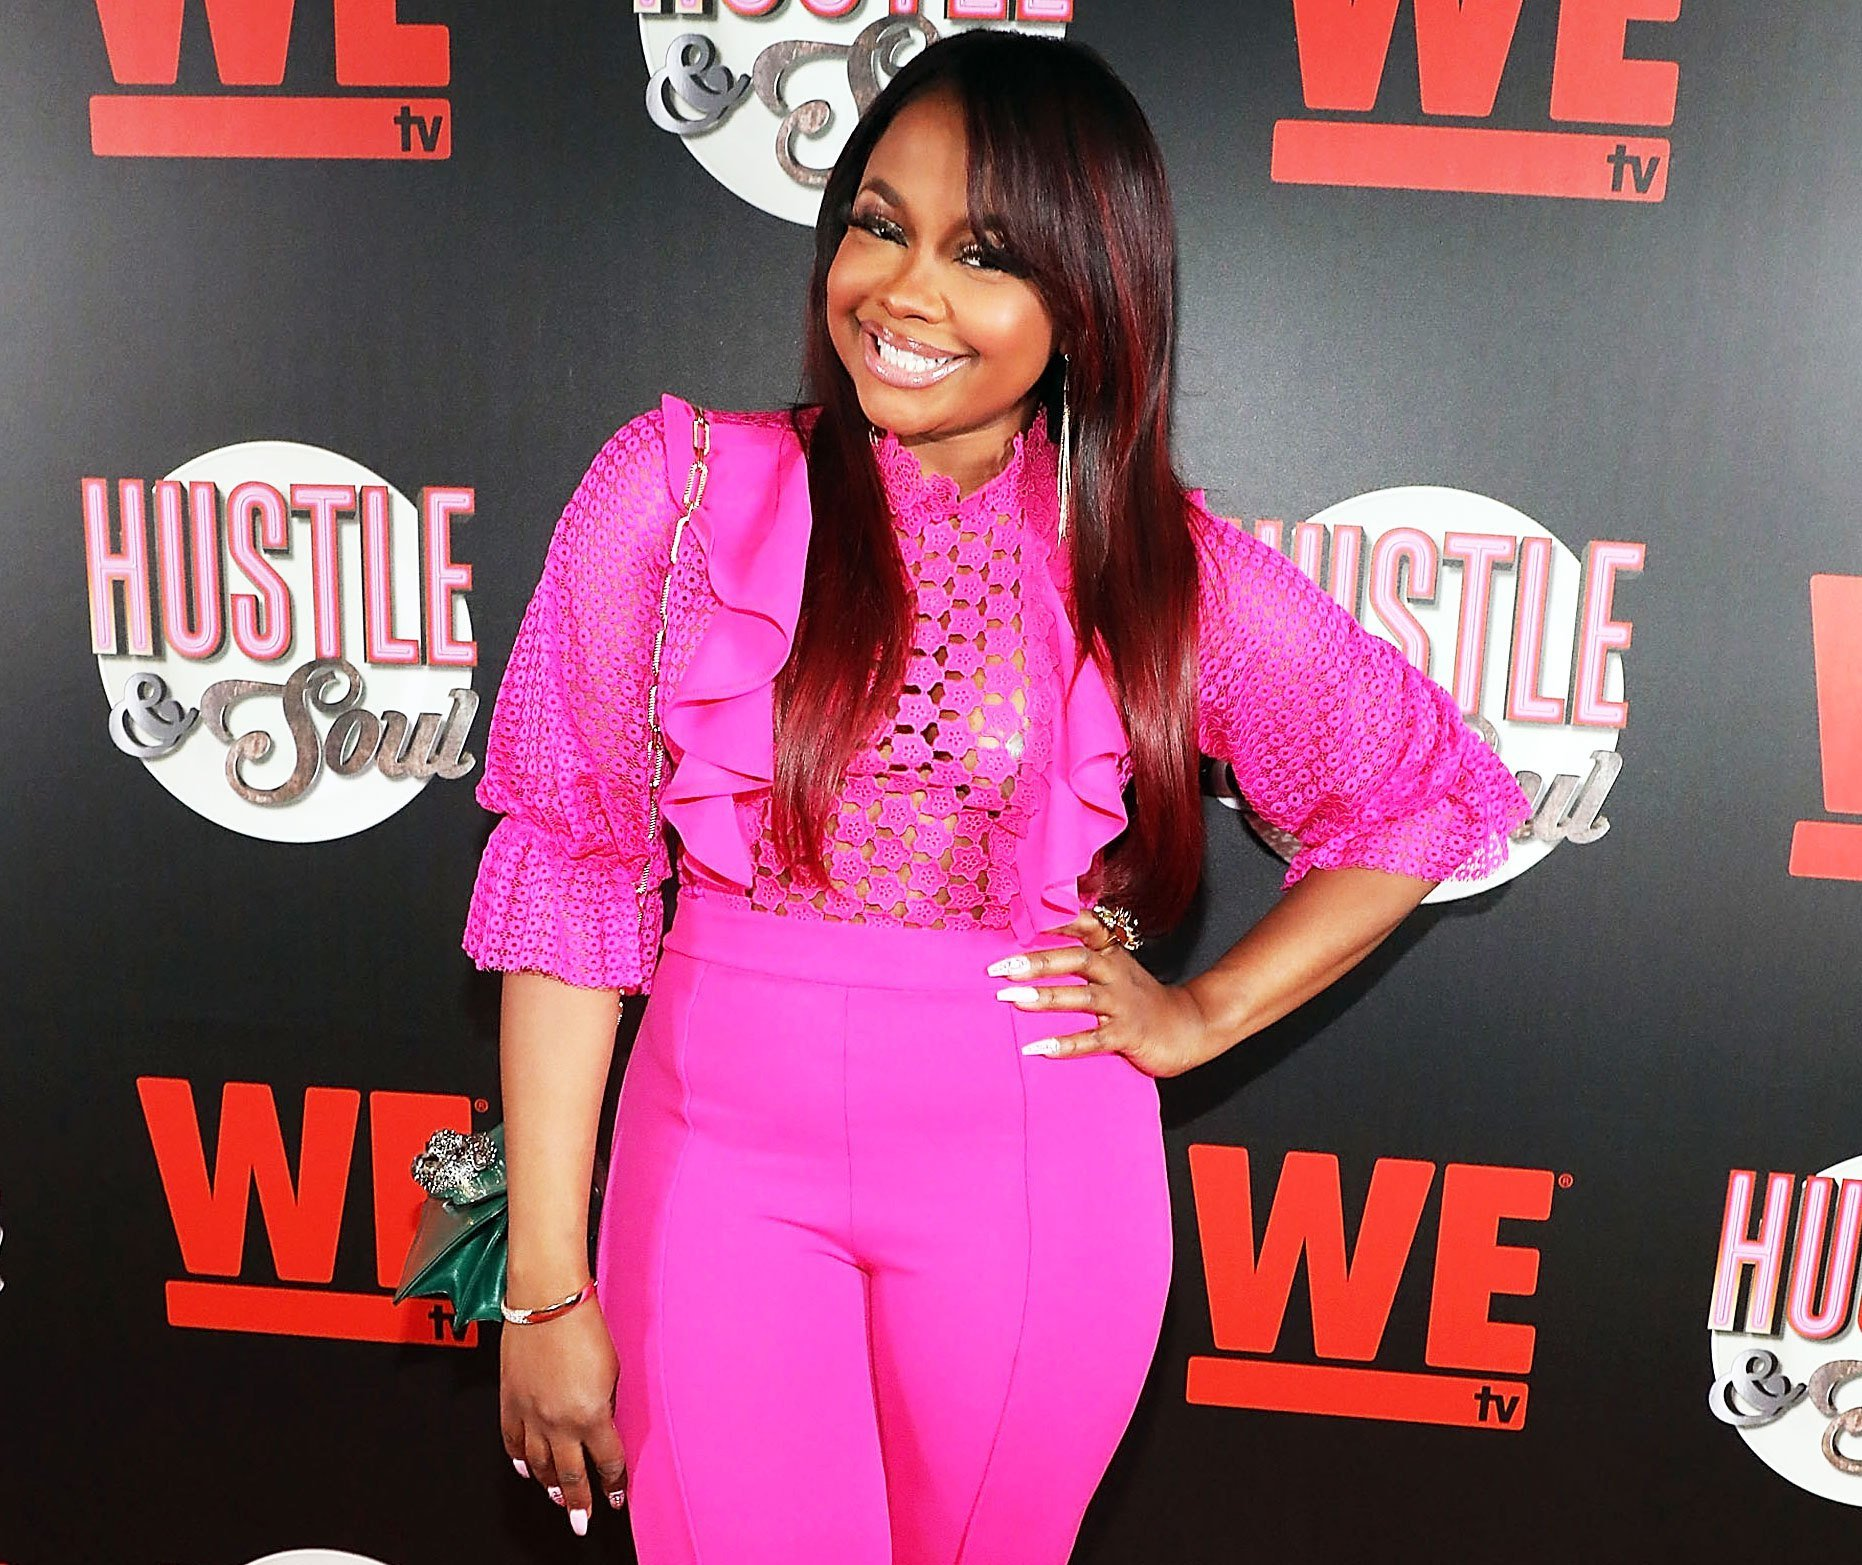 Phaedra Parks Continues To Ask For Justice For Breonna Taylor